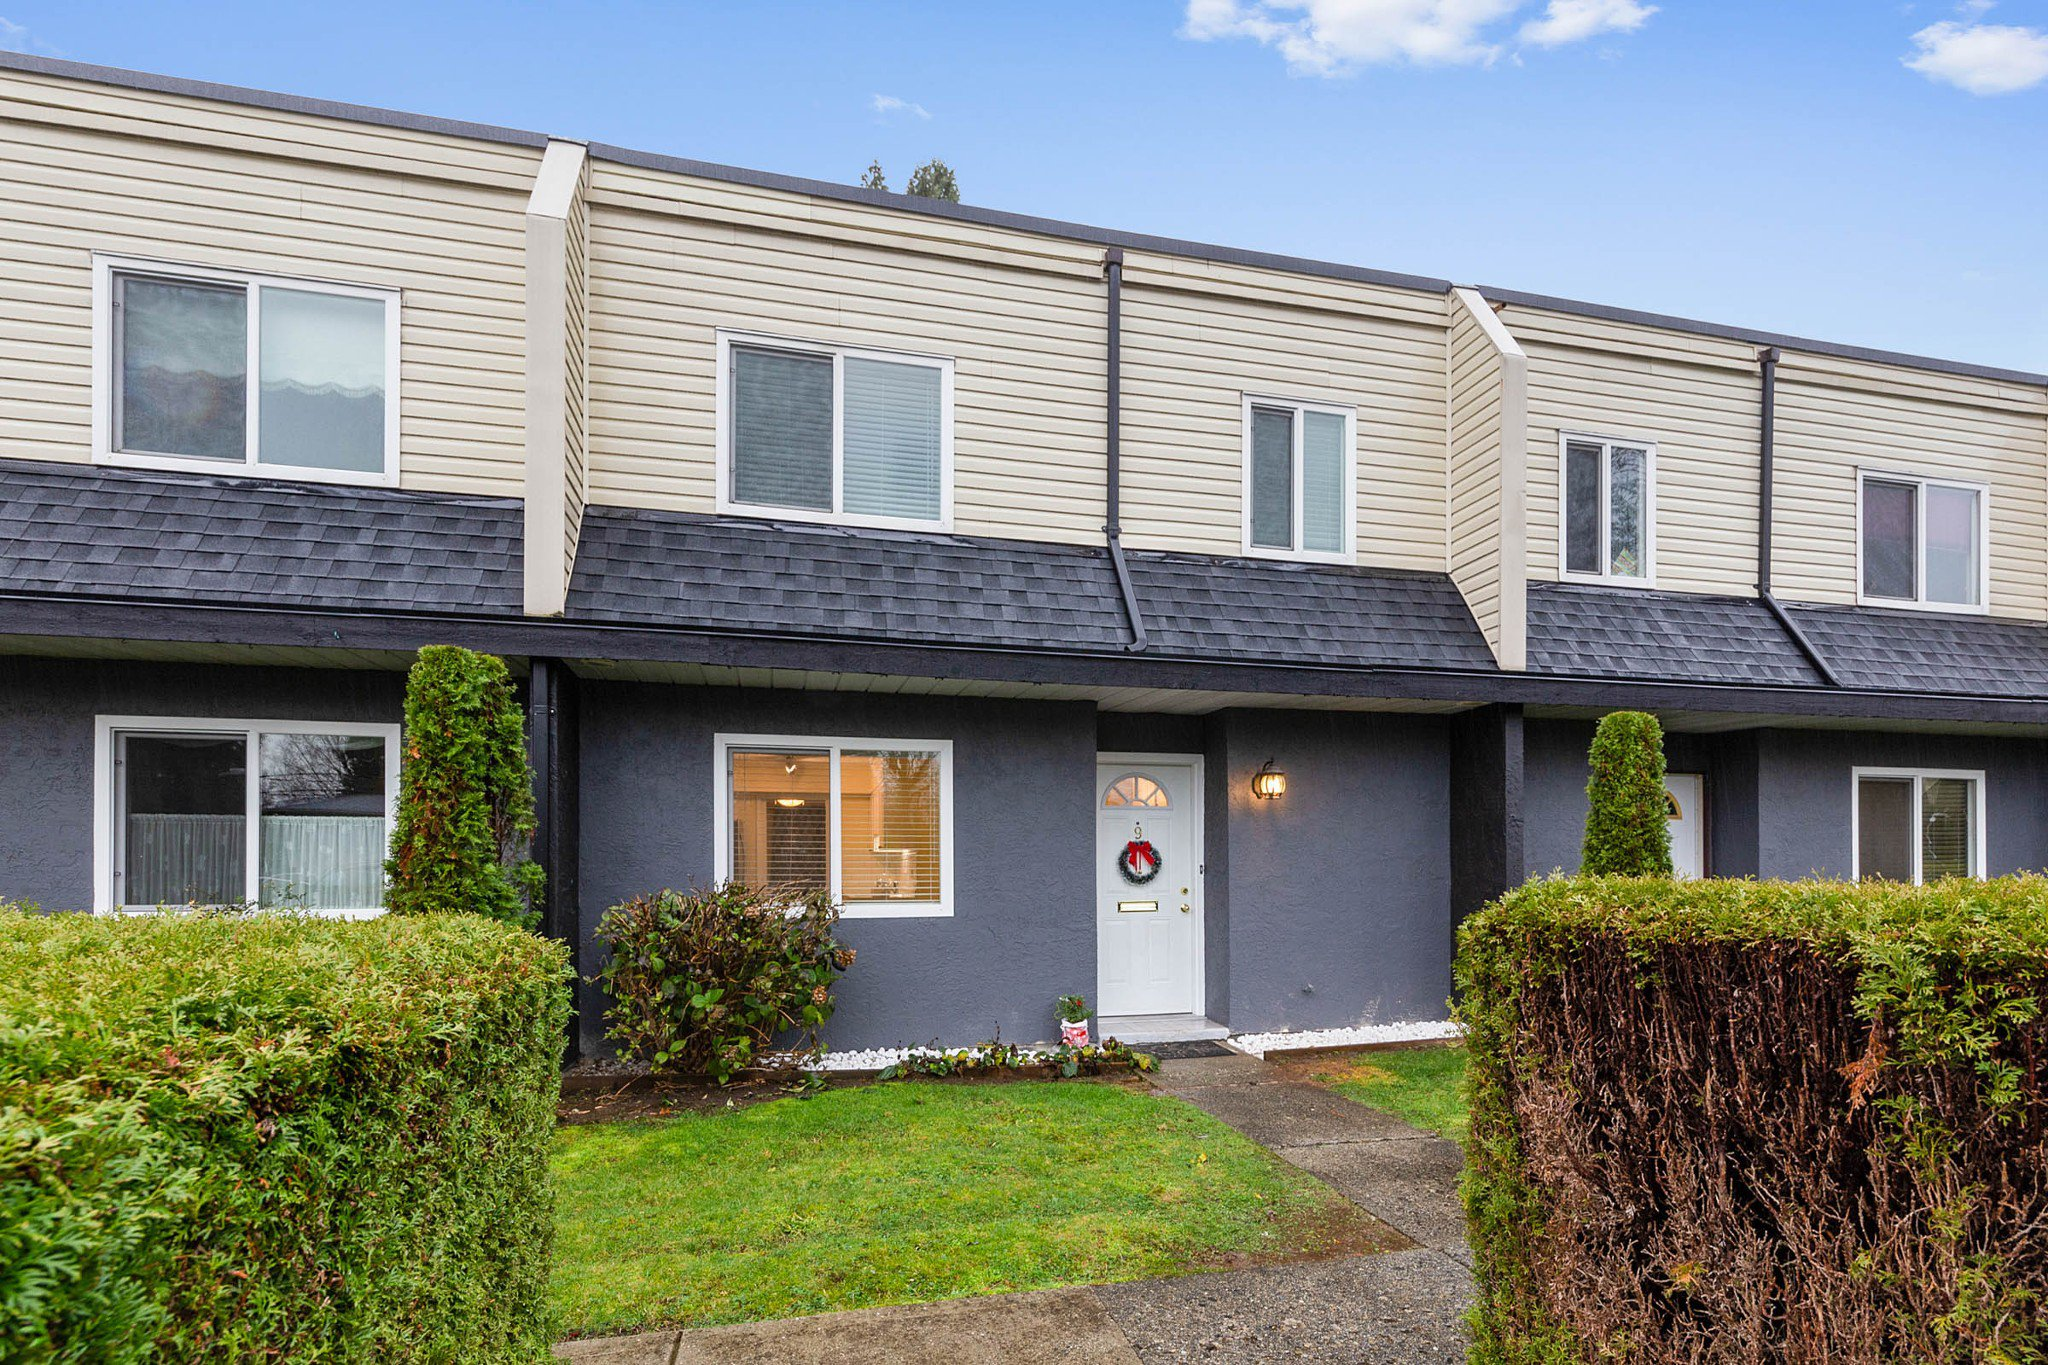 Main Photo: 9 2957 OXFORD Street in Port Coquitlam: Glenwood PQ Townhouse for sale : MLS®# R2519908